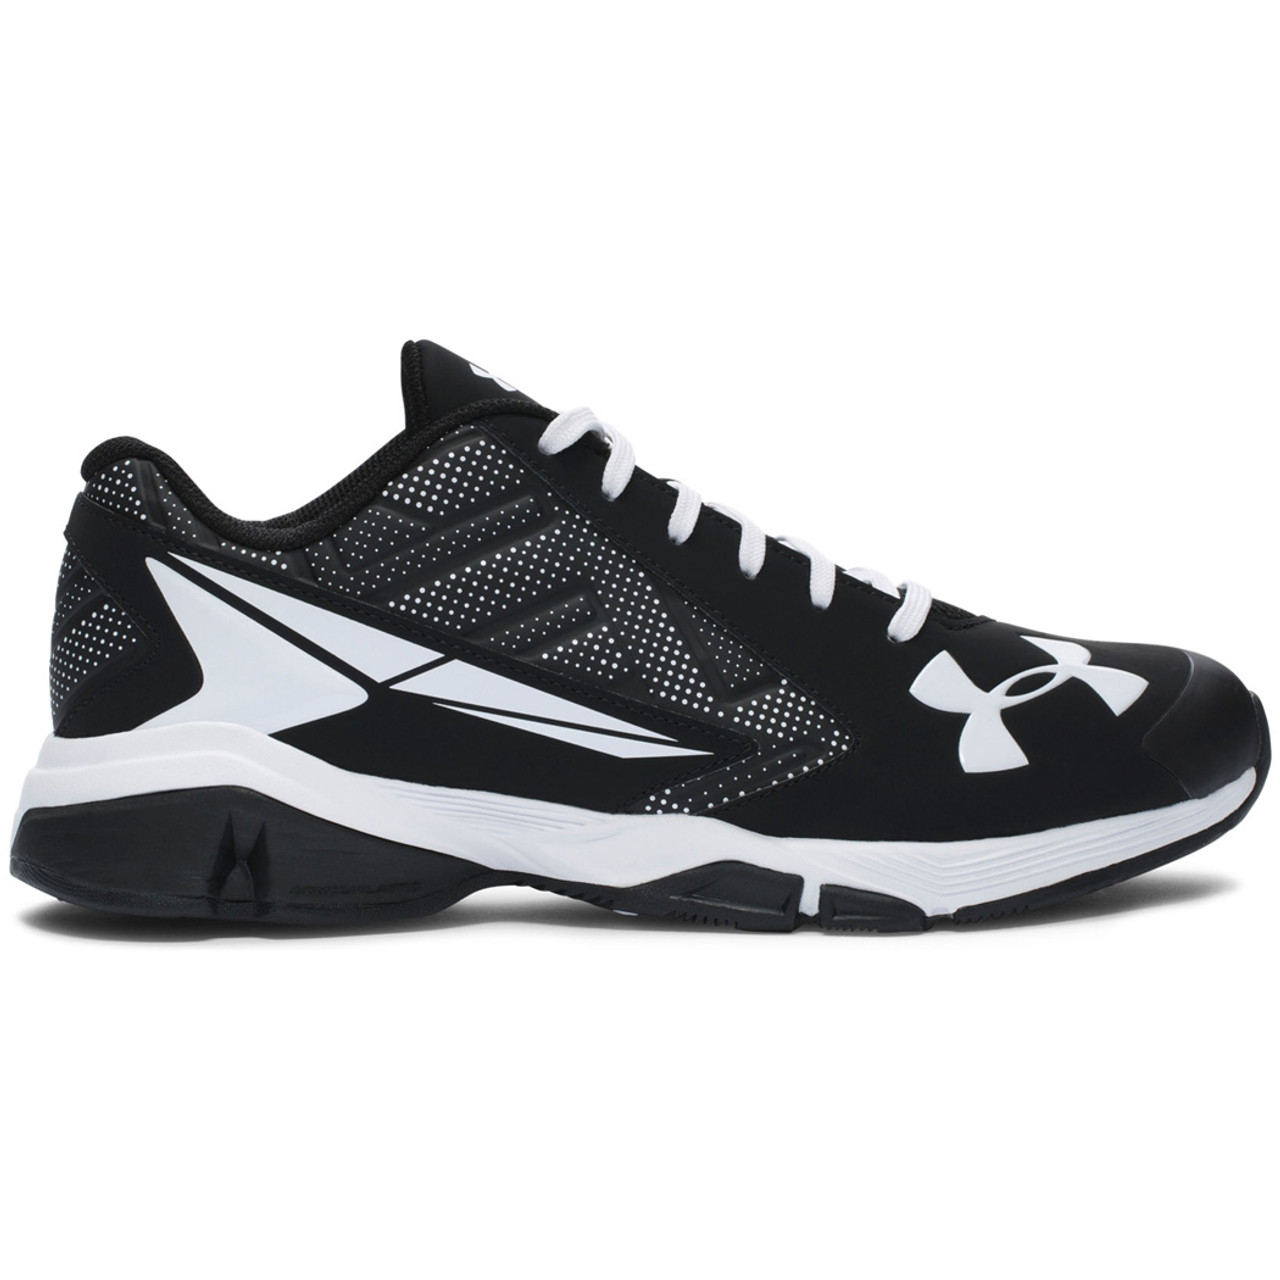 Under Armour Shoes - Yard Low Base